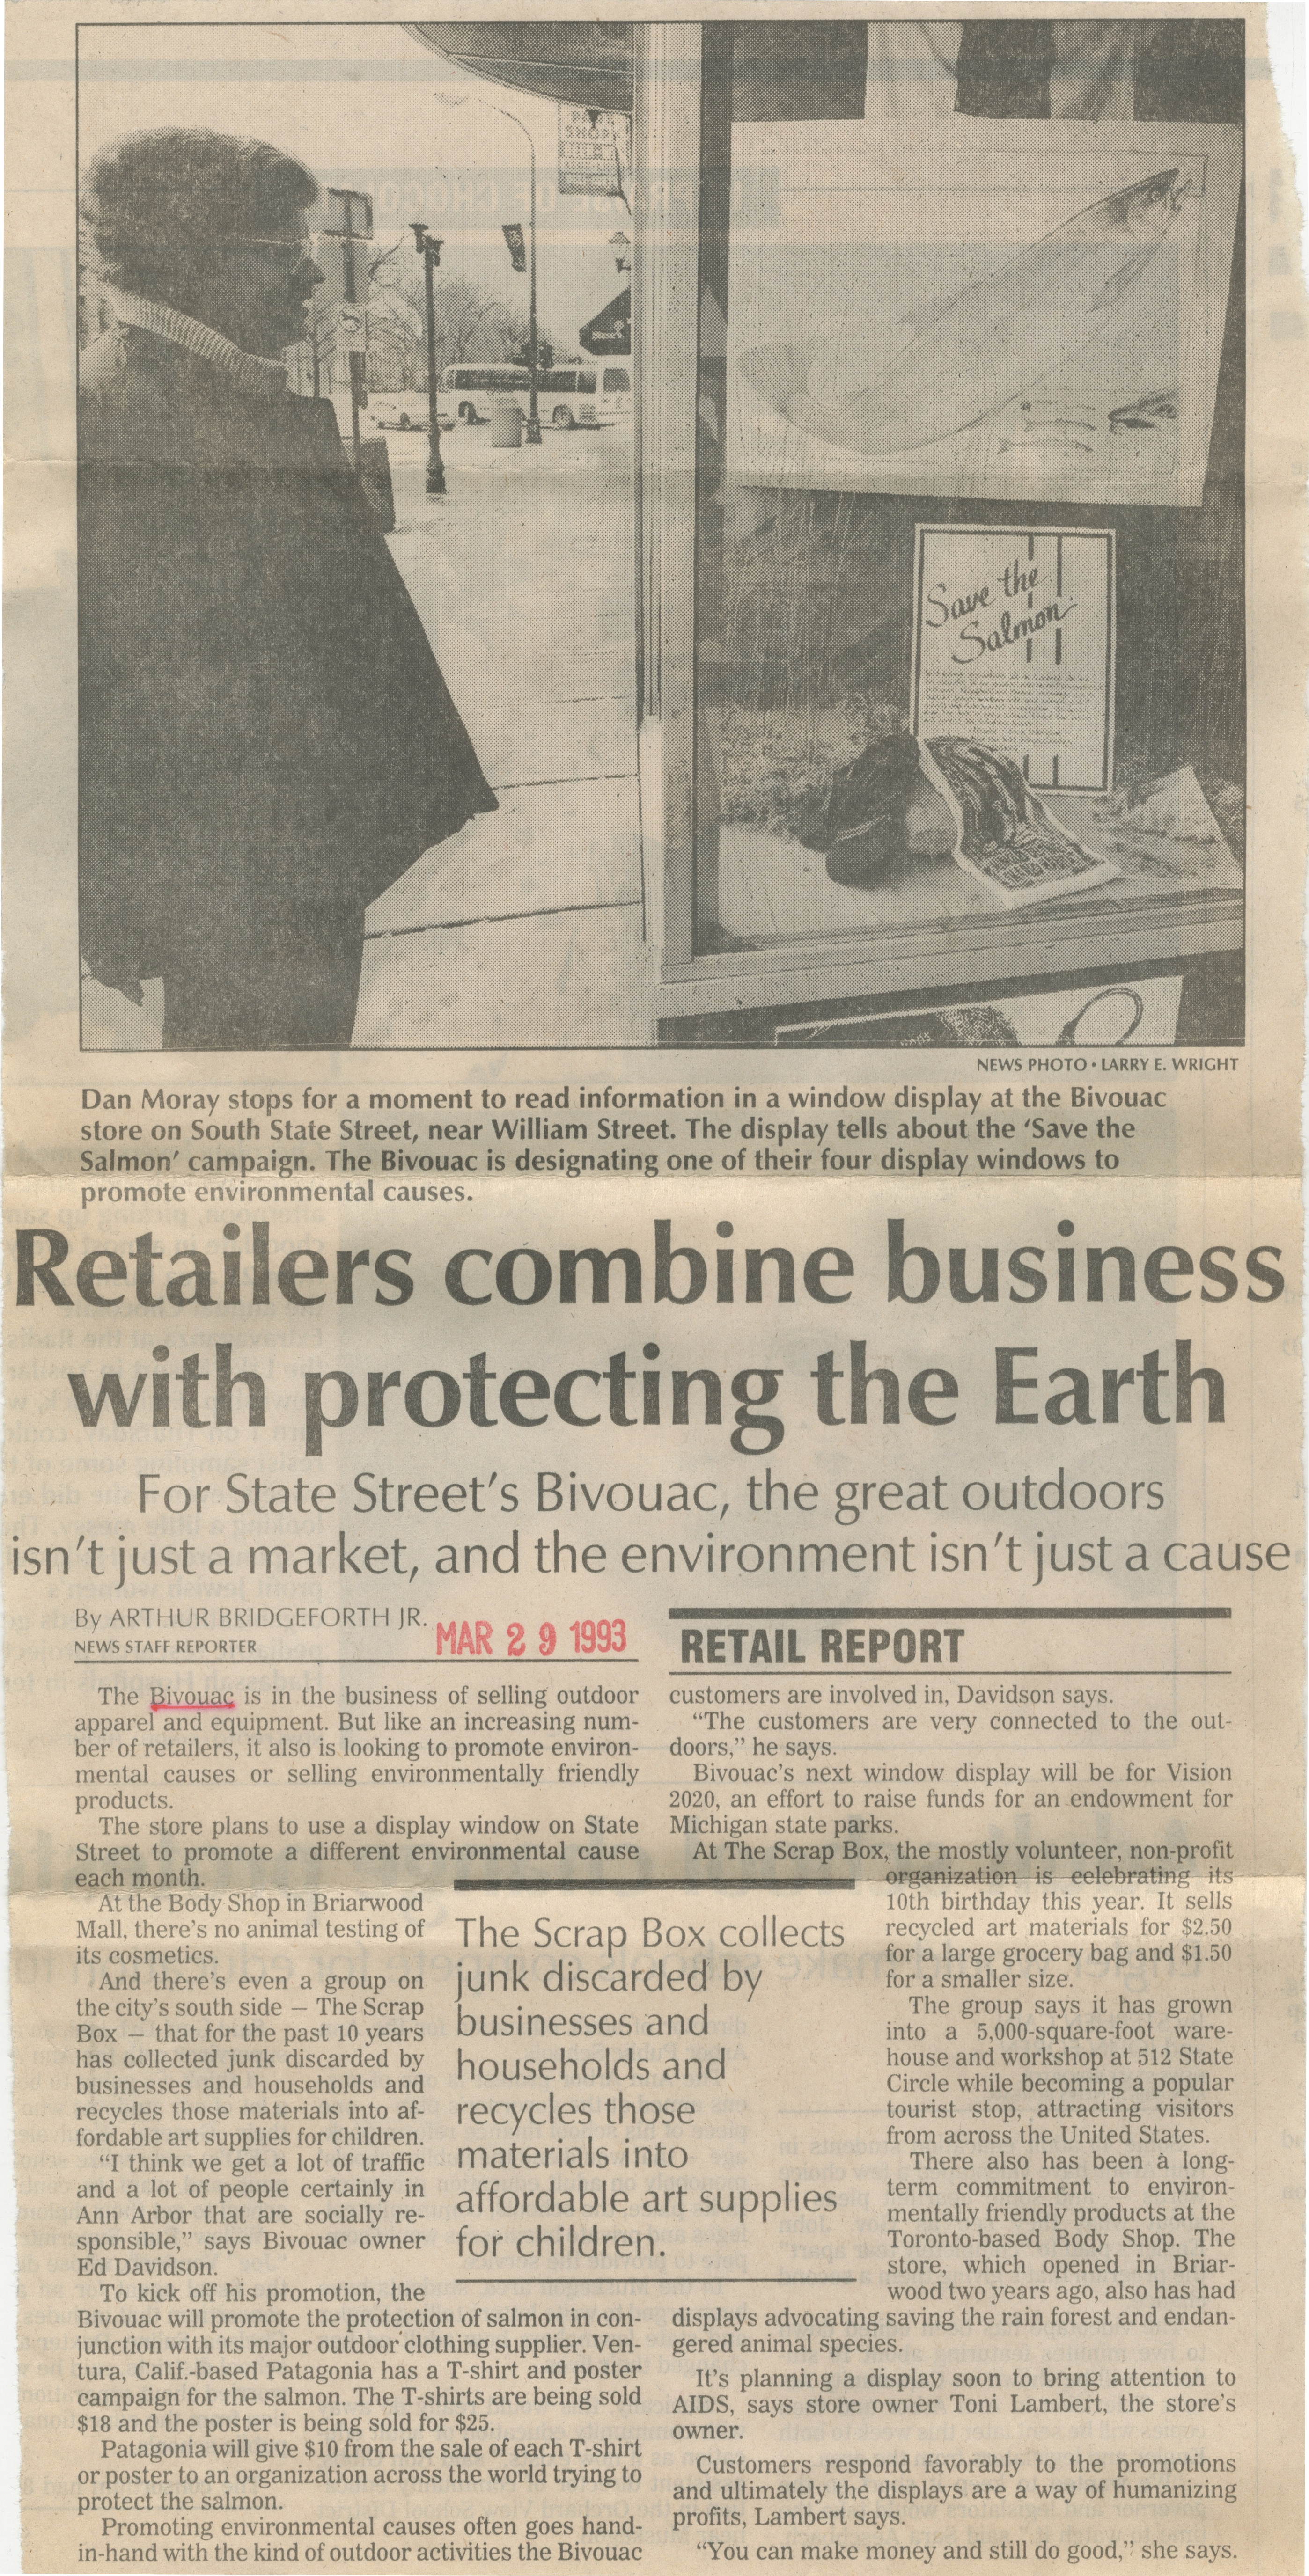 Retailers Combine Business With Protecting The Earth image